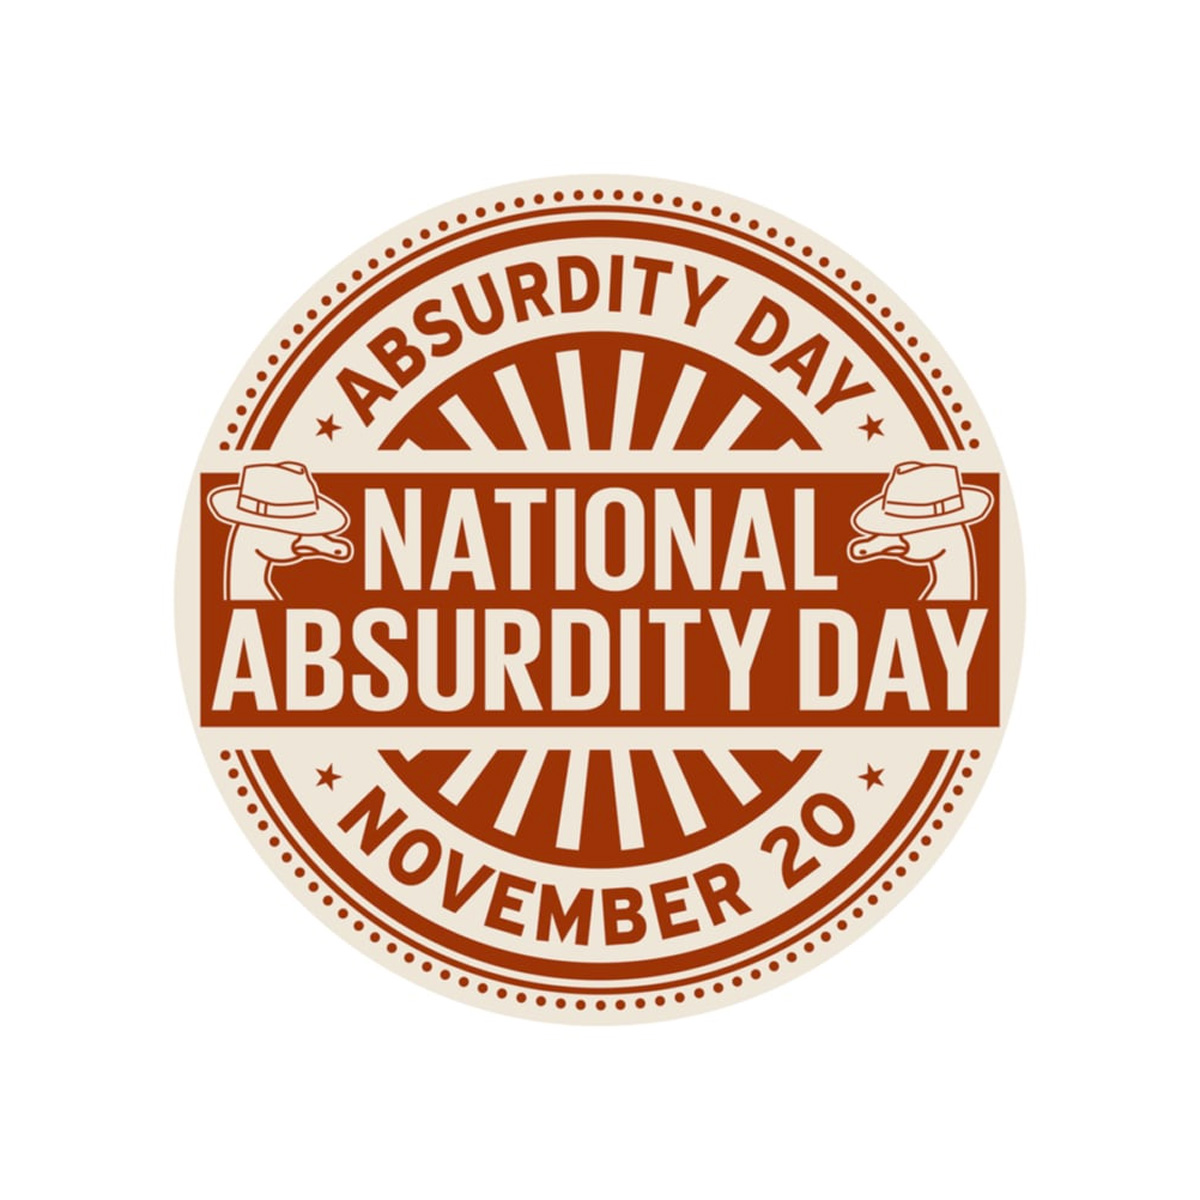 NATIONAL ABSURDITY DAY   November 20, 20   National Today